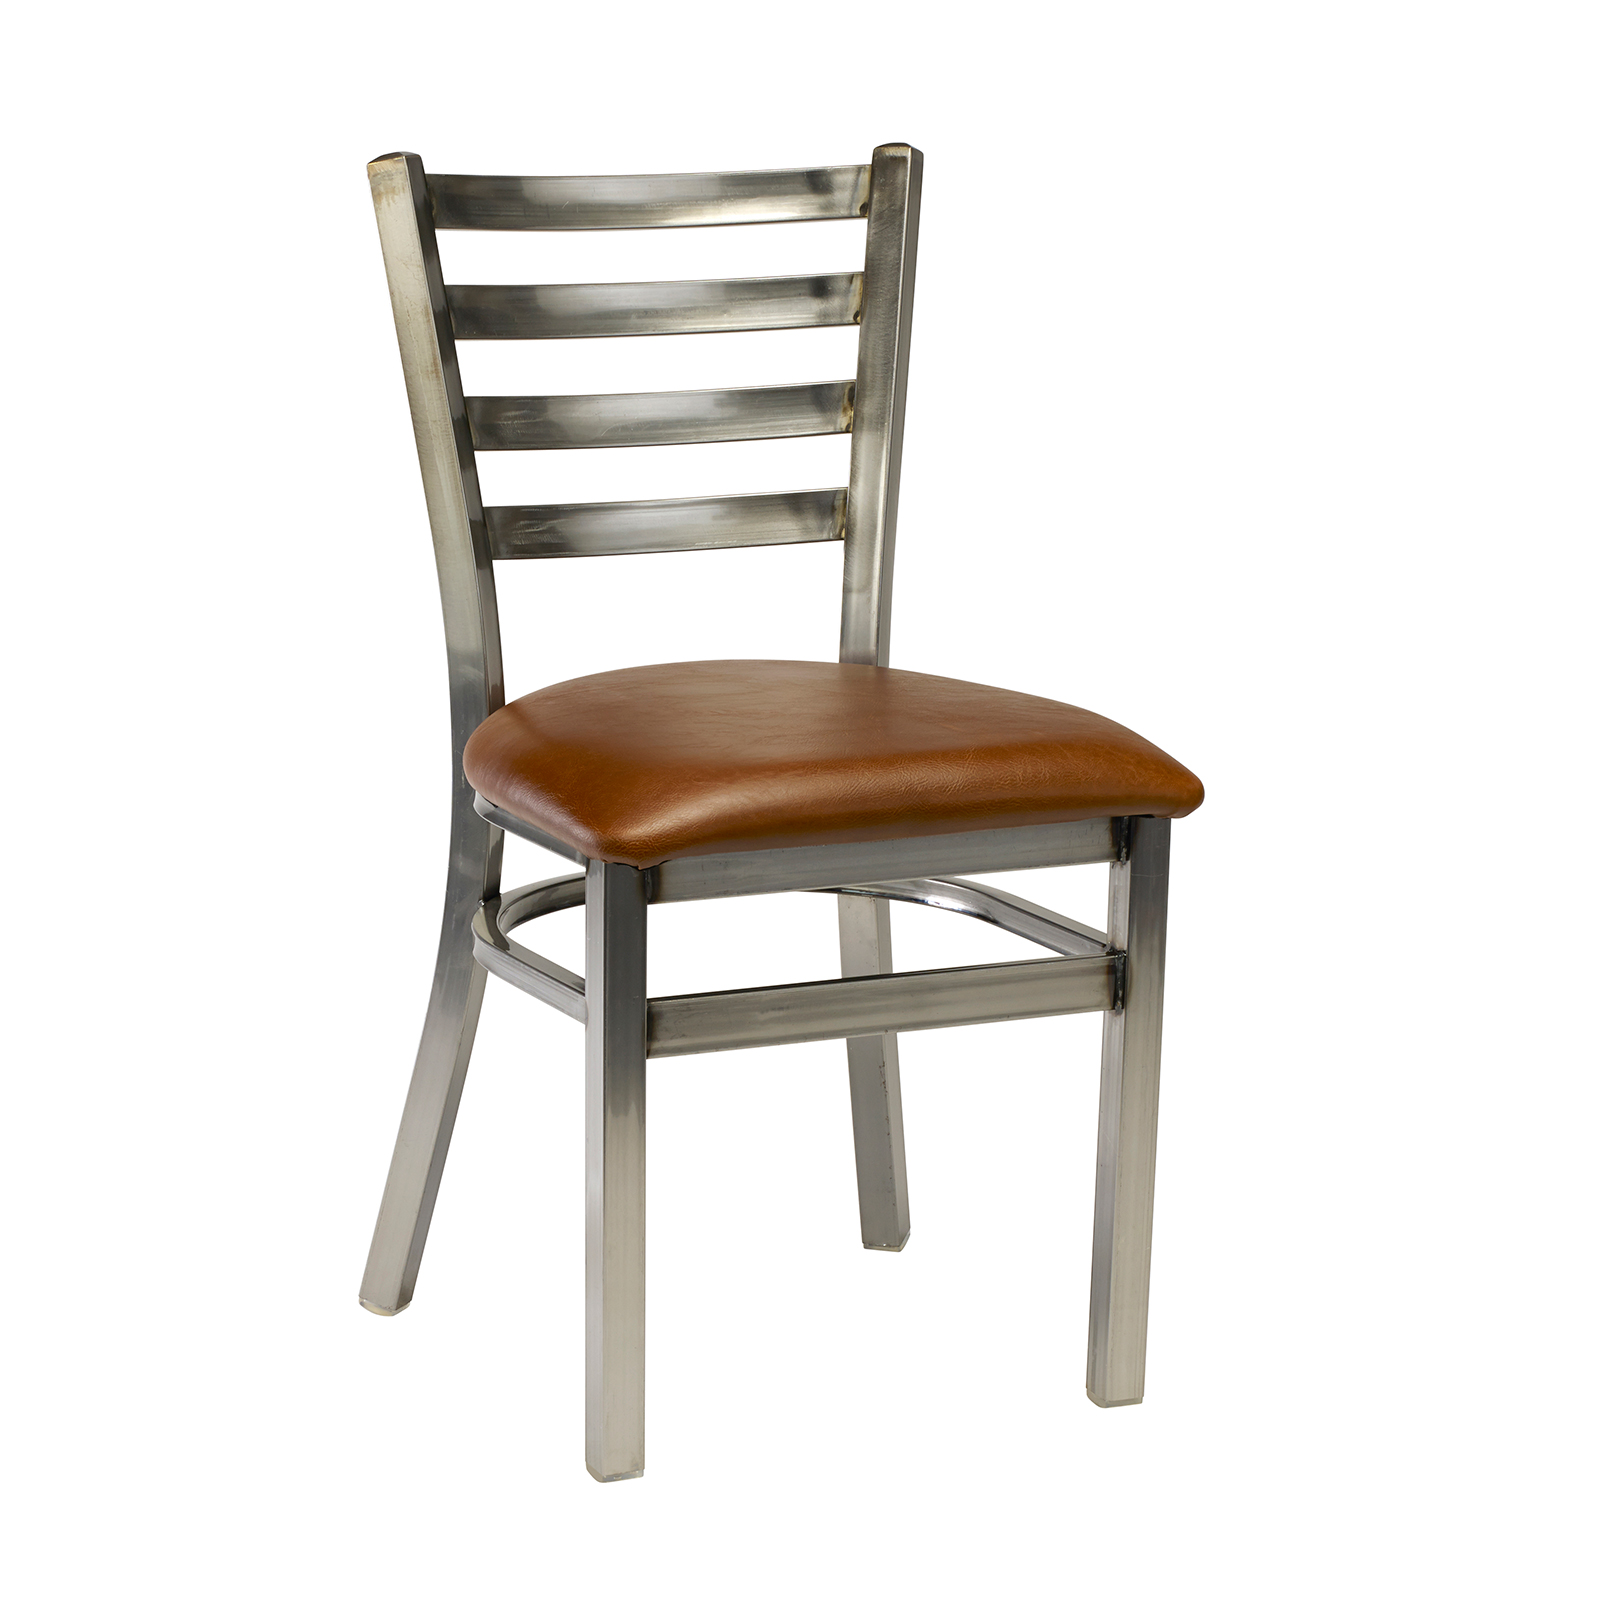 513-D PS G & A Commercial Seating chair, side, indoor